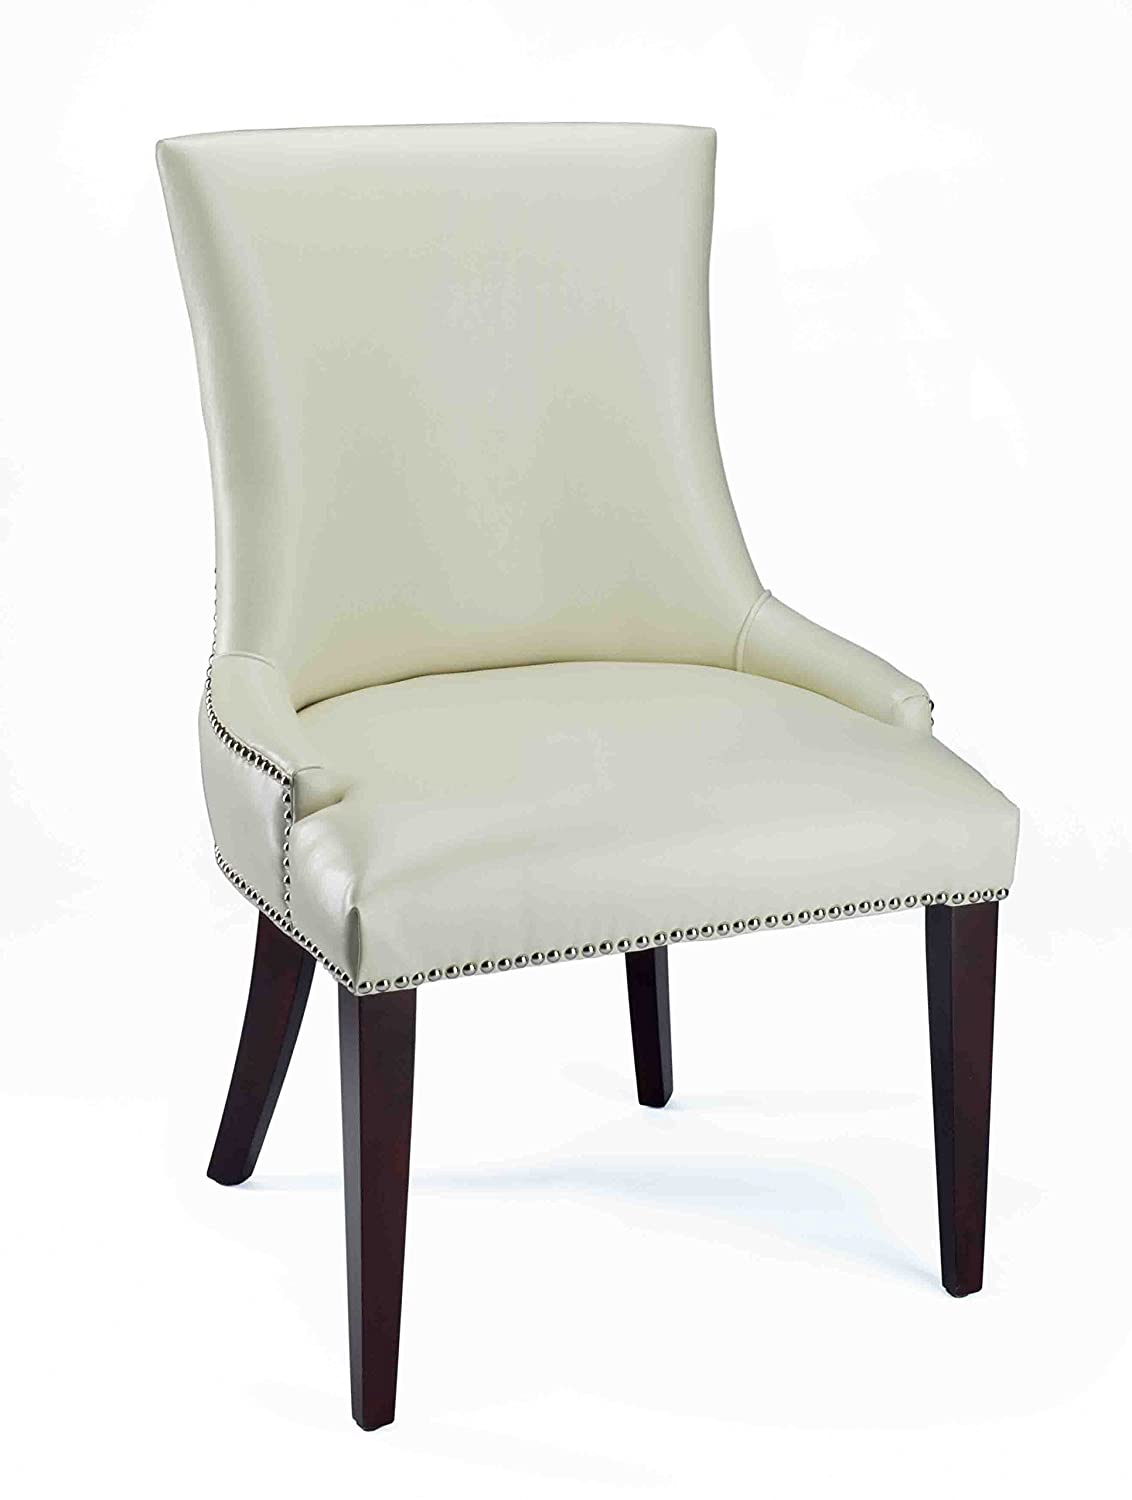 Amazon.com - Safavieh Mercer Collection Eva Leather Dining Chair ...